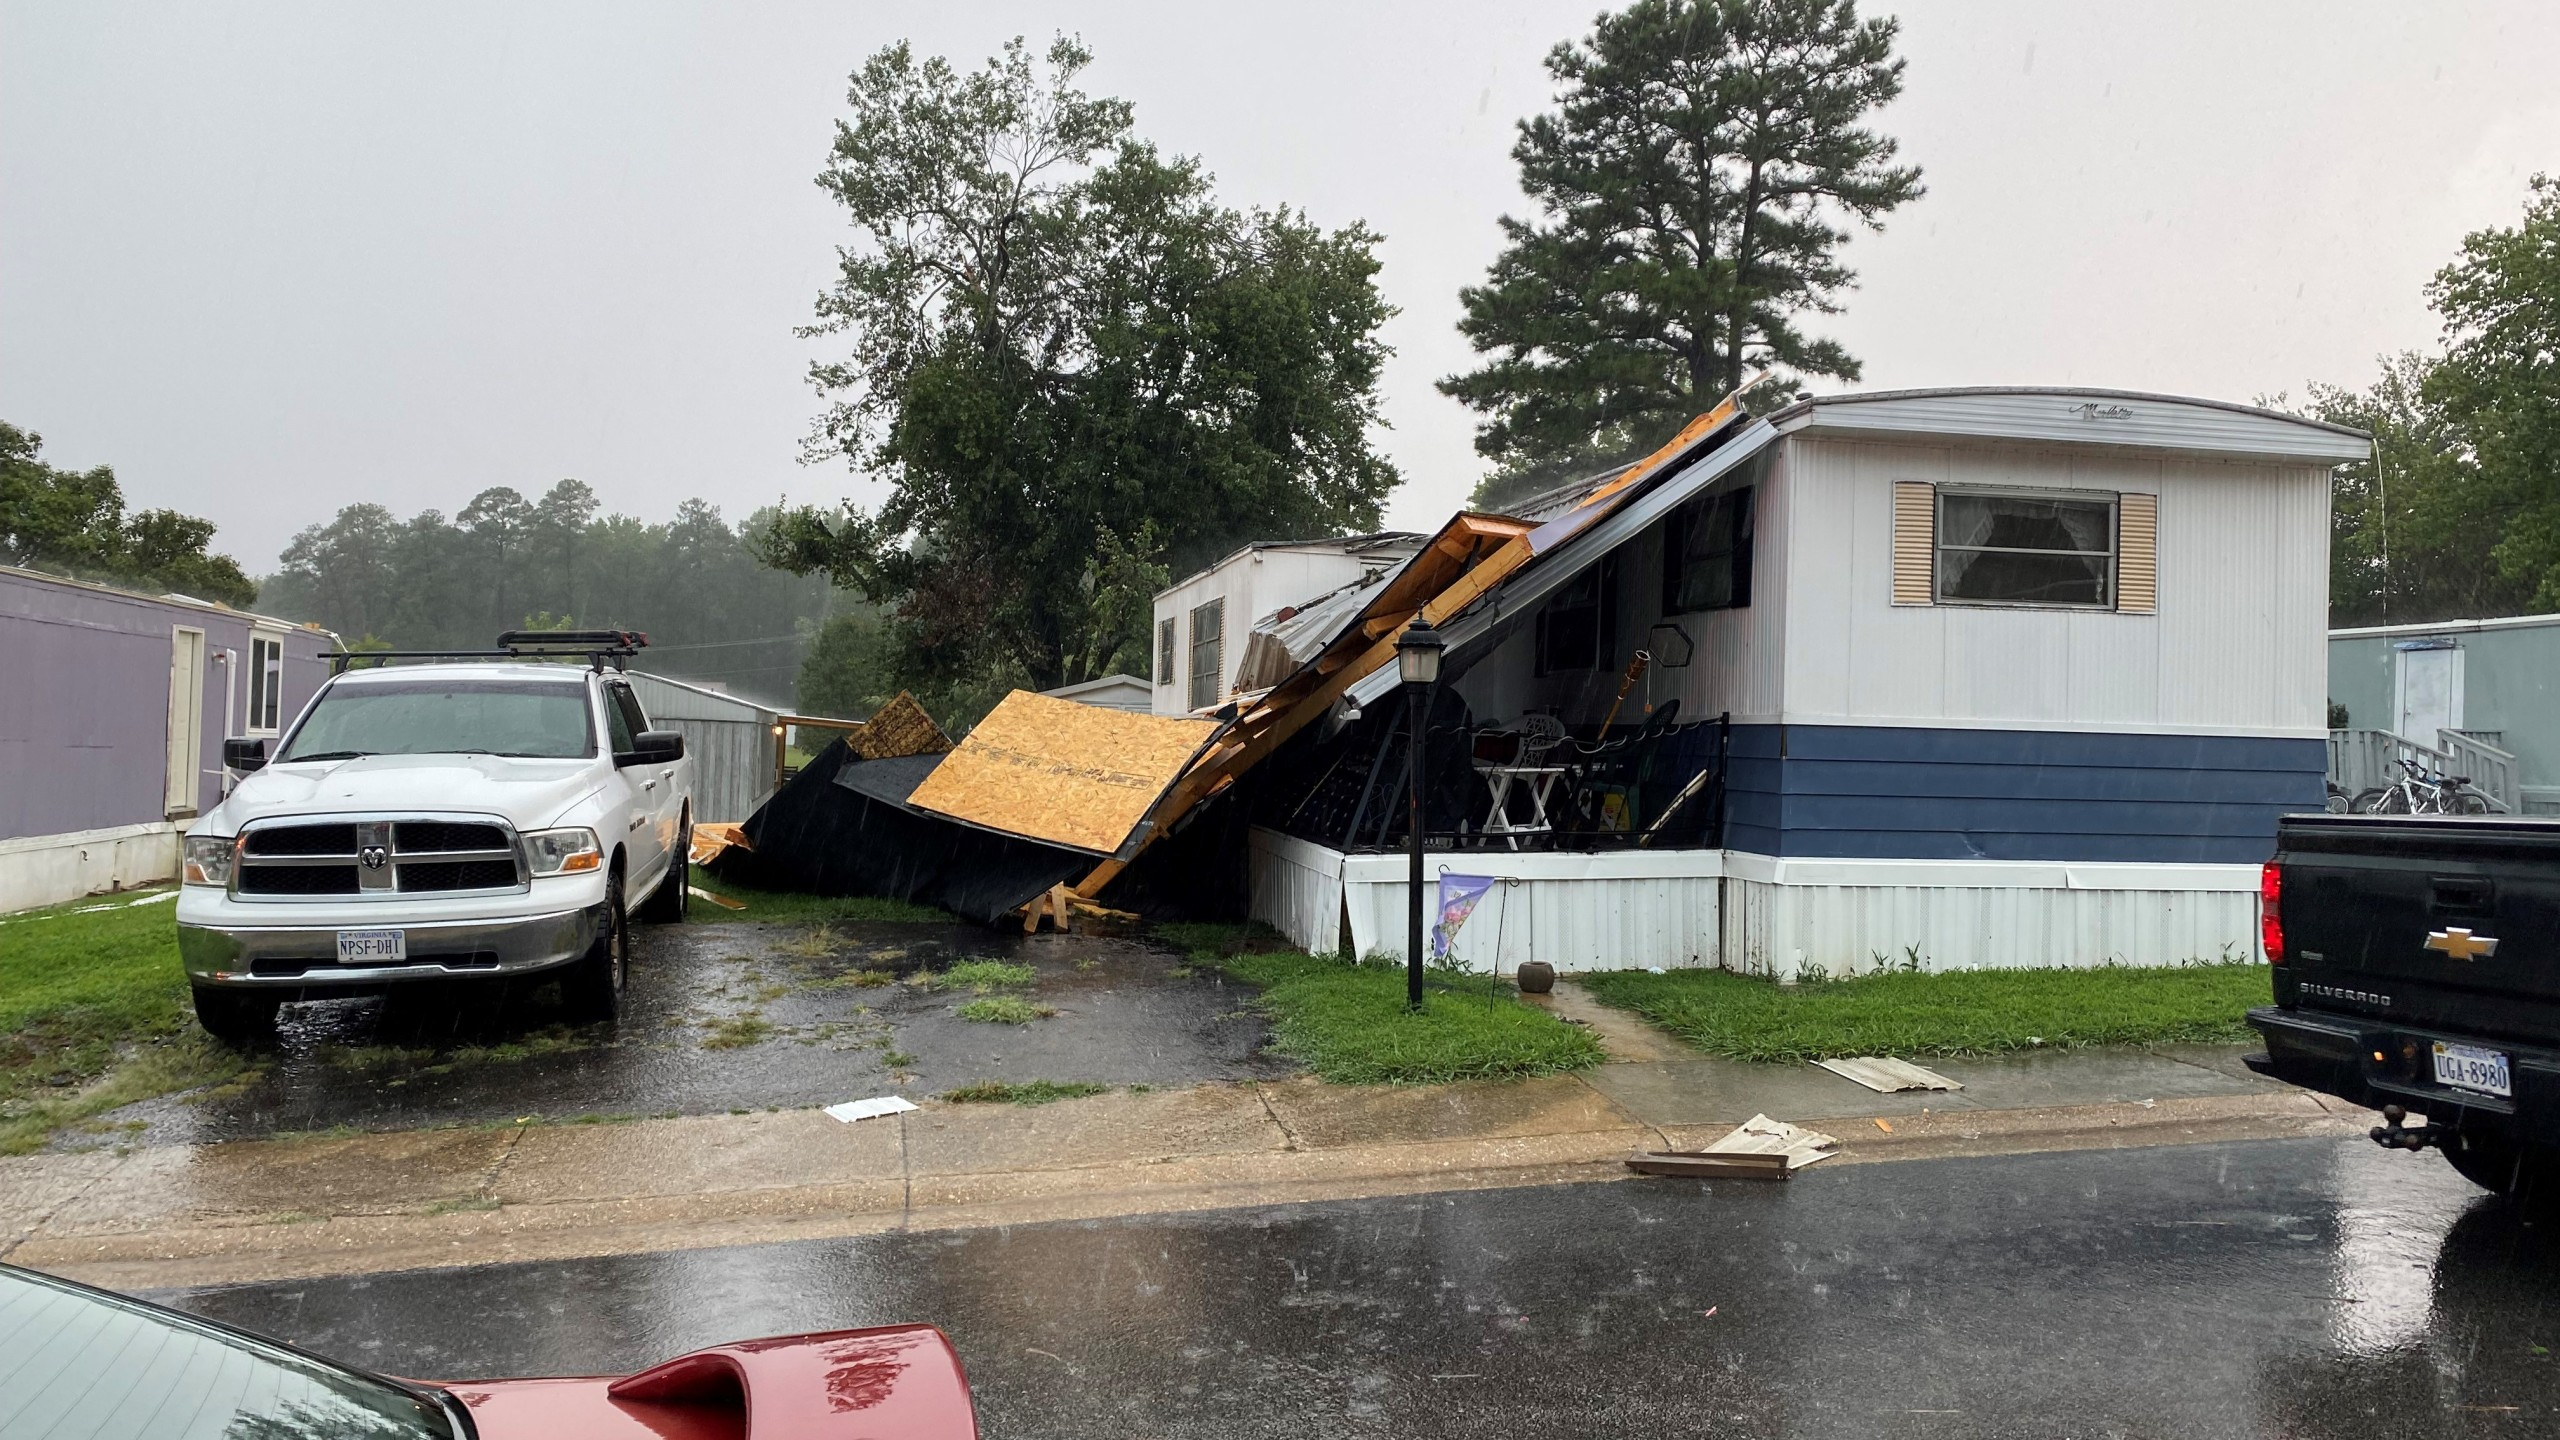 Severe weather damaged the roof on a trailer in Greenleigh Mobile Home Park in Chester, Virginia